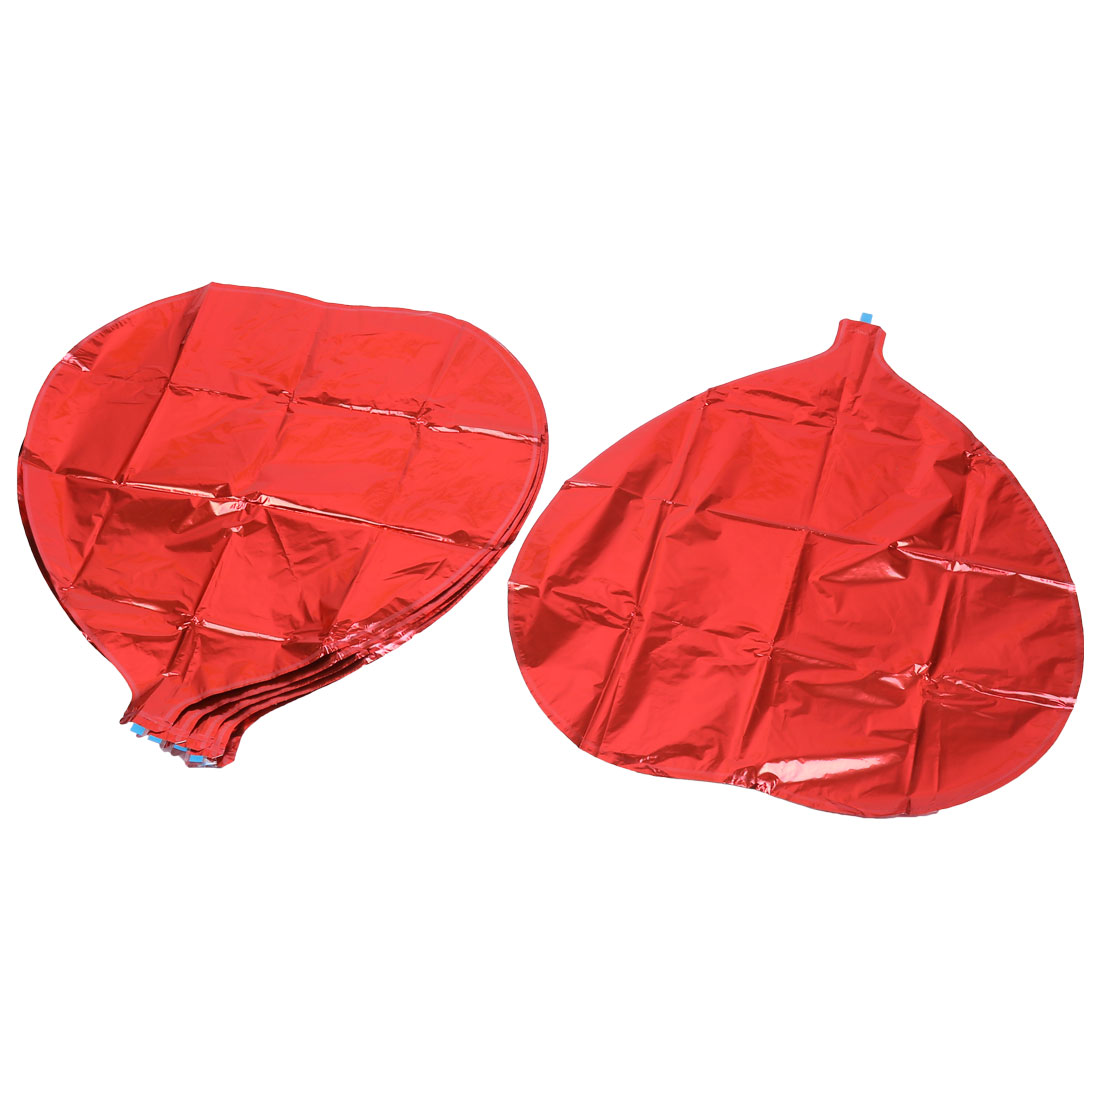 Christmas Wedding Party Decor Heart Shaped Aluminum Foil Balloons Red 6 PCS